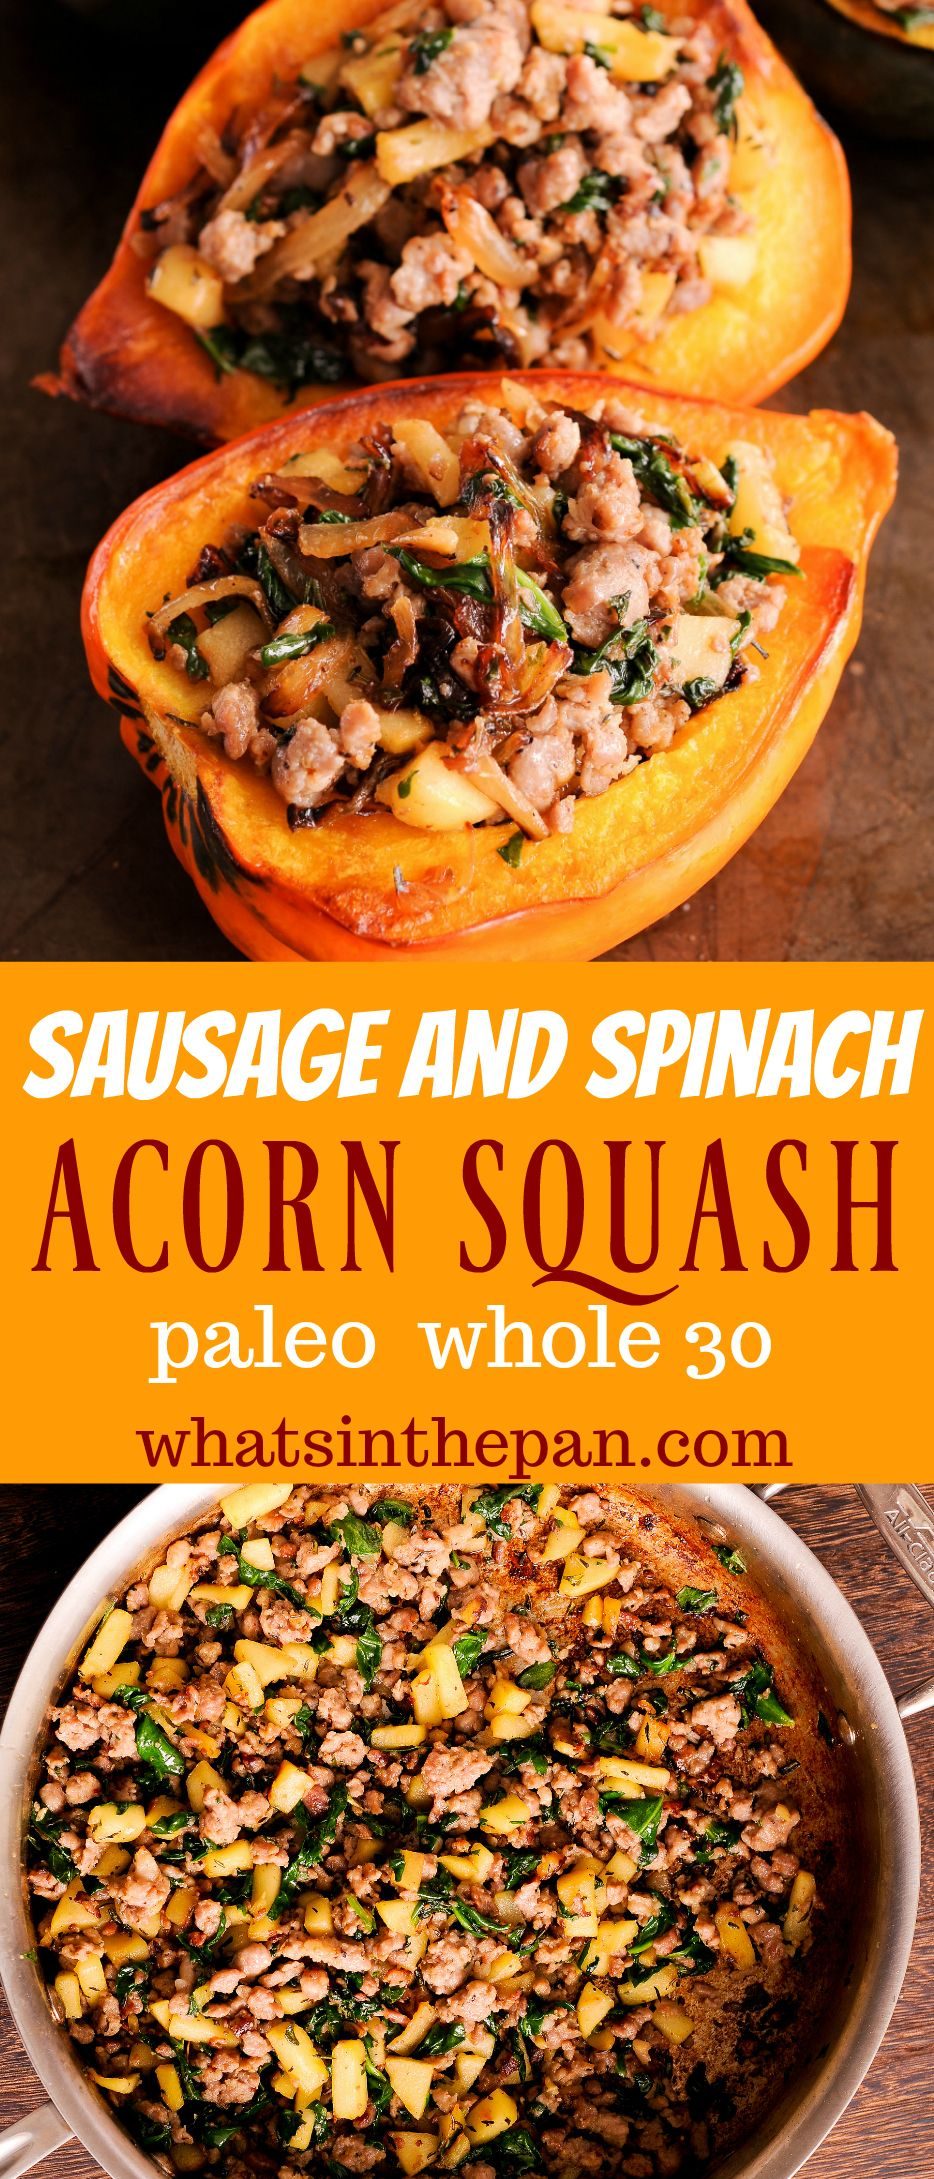 Apple And Sausage Stuffed Acorn Squash Is A New Healthy Addition